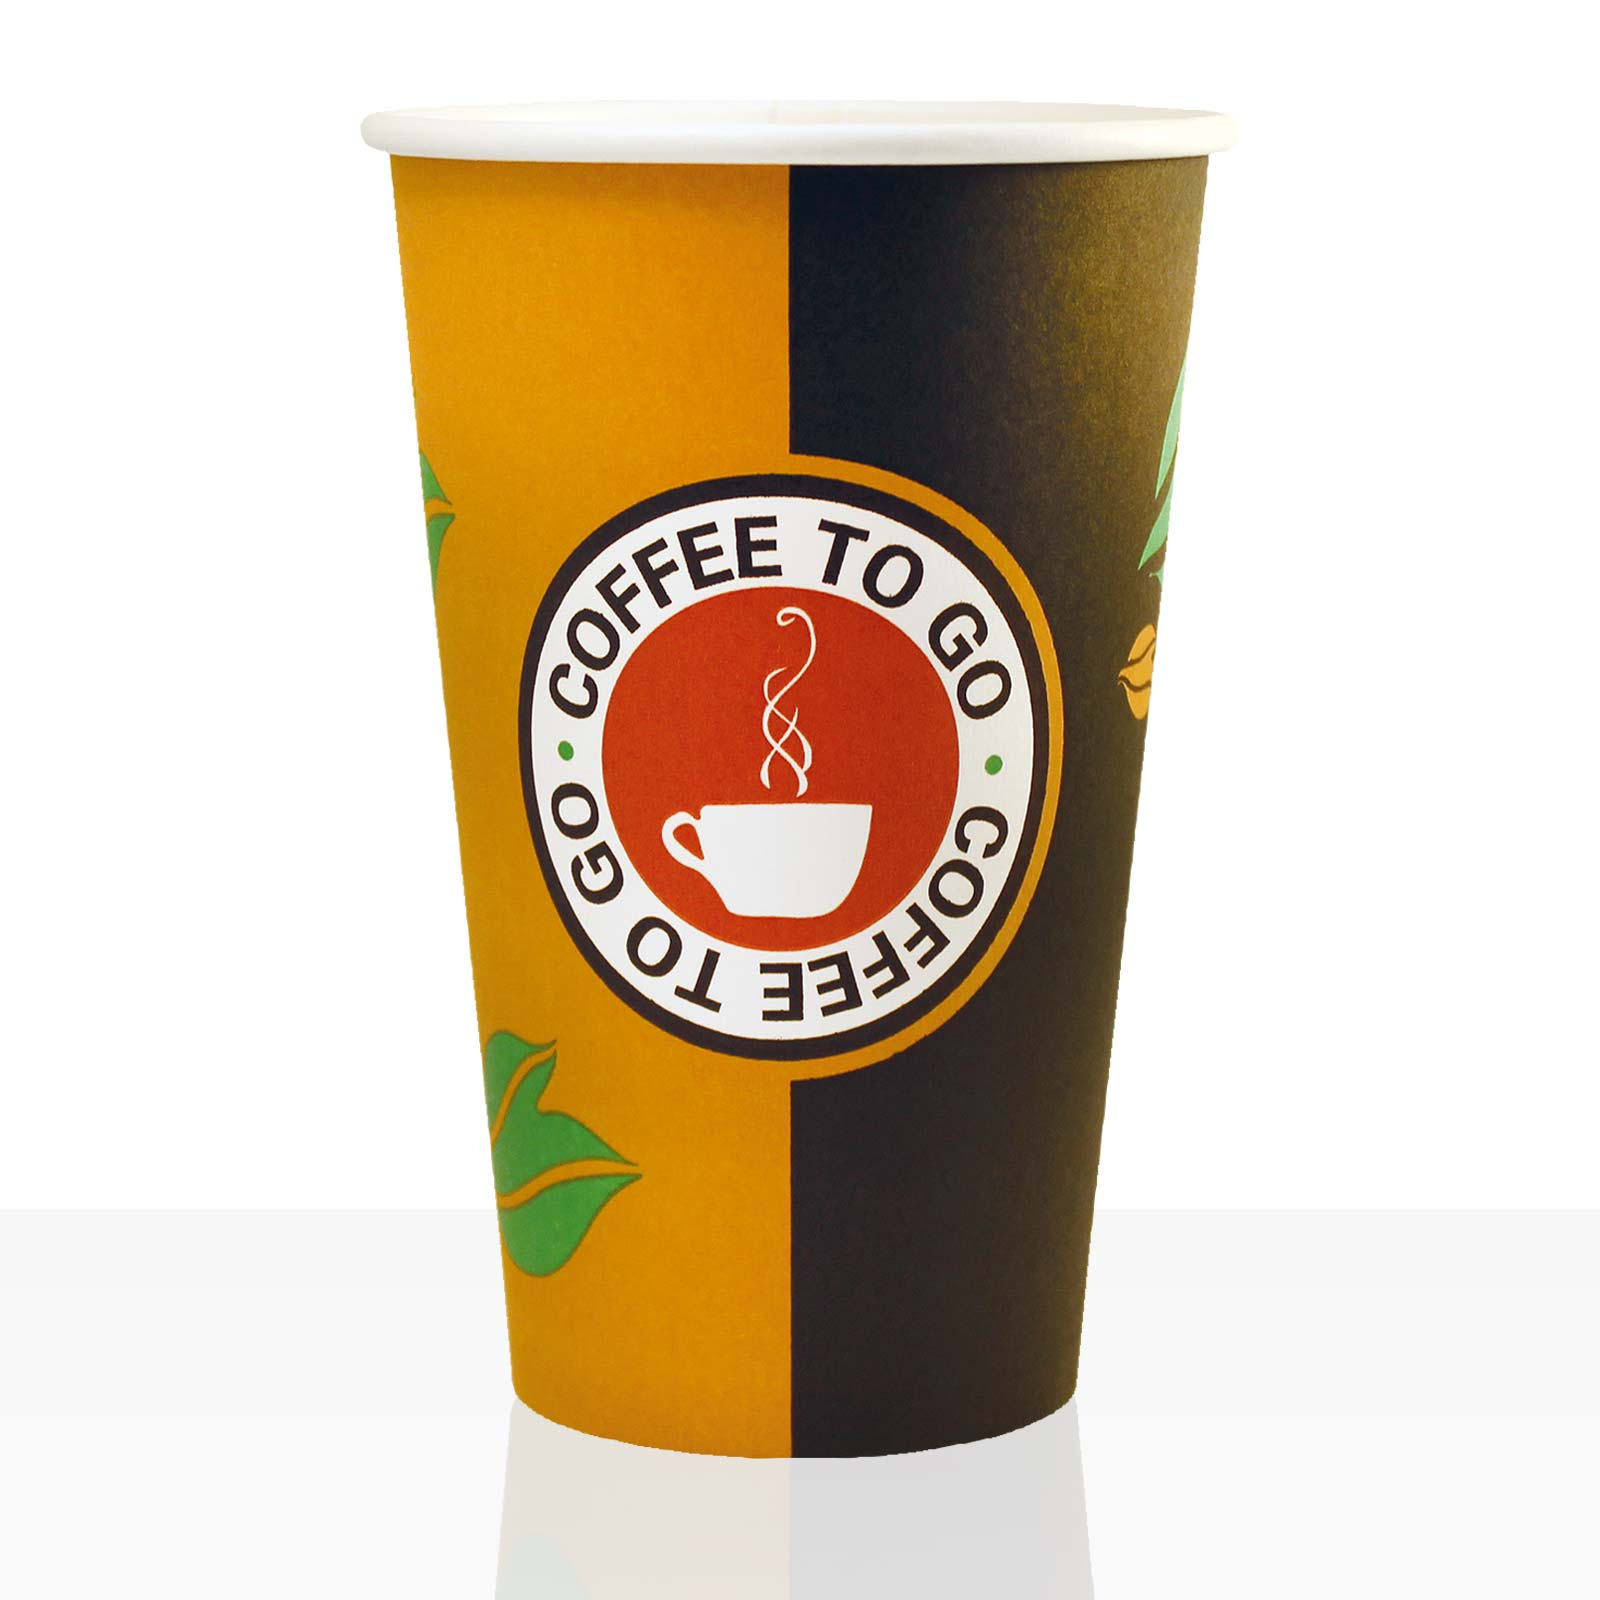 Coffee to go Becher aus Hartpapier 0,4l, 100Stk, Pappbecher, Kaffeebecher to go